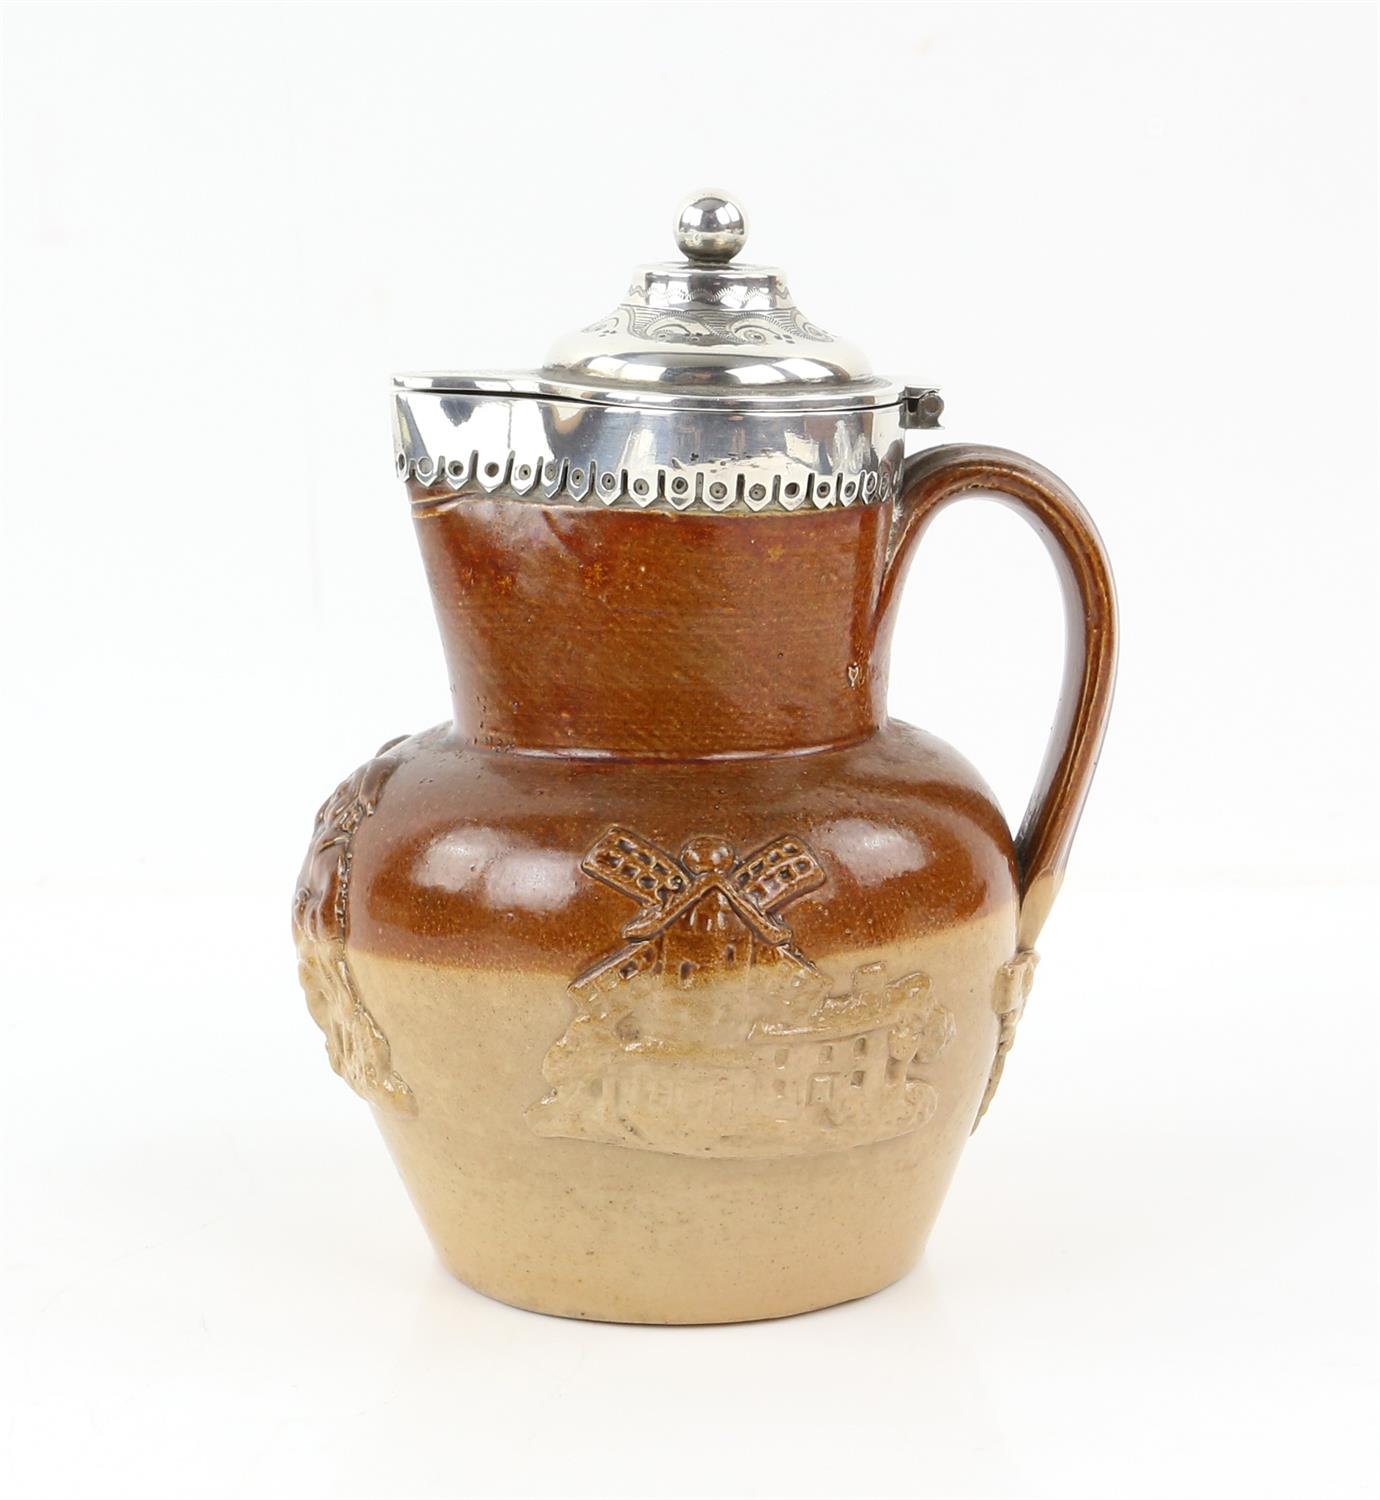 Silver mounted Victorian harvest jug by Thomas Prime and Son, Birmingham 1872